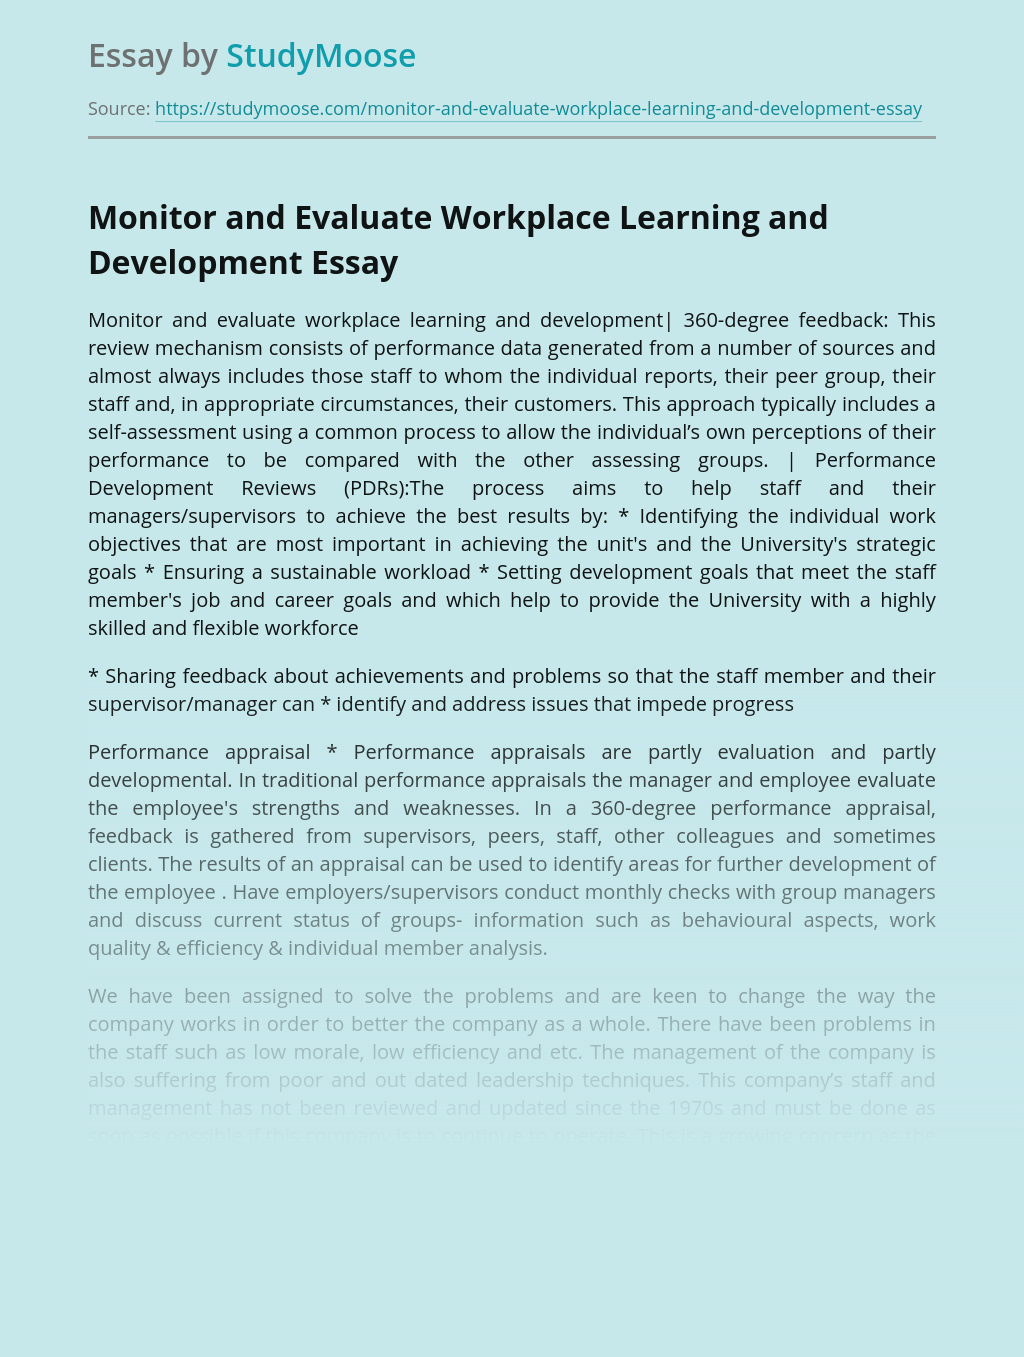 Monitor and Evaluate Workplace Learning and Development